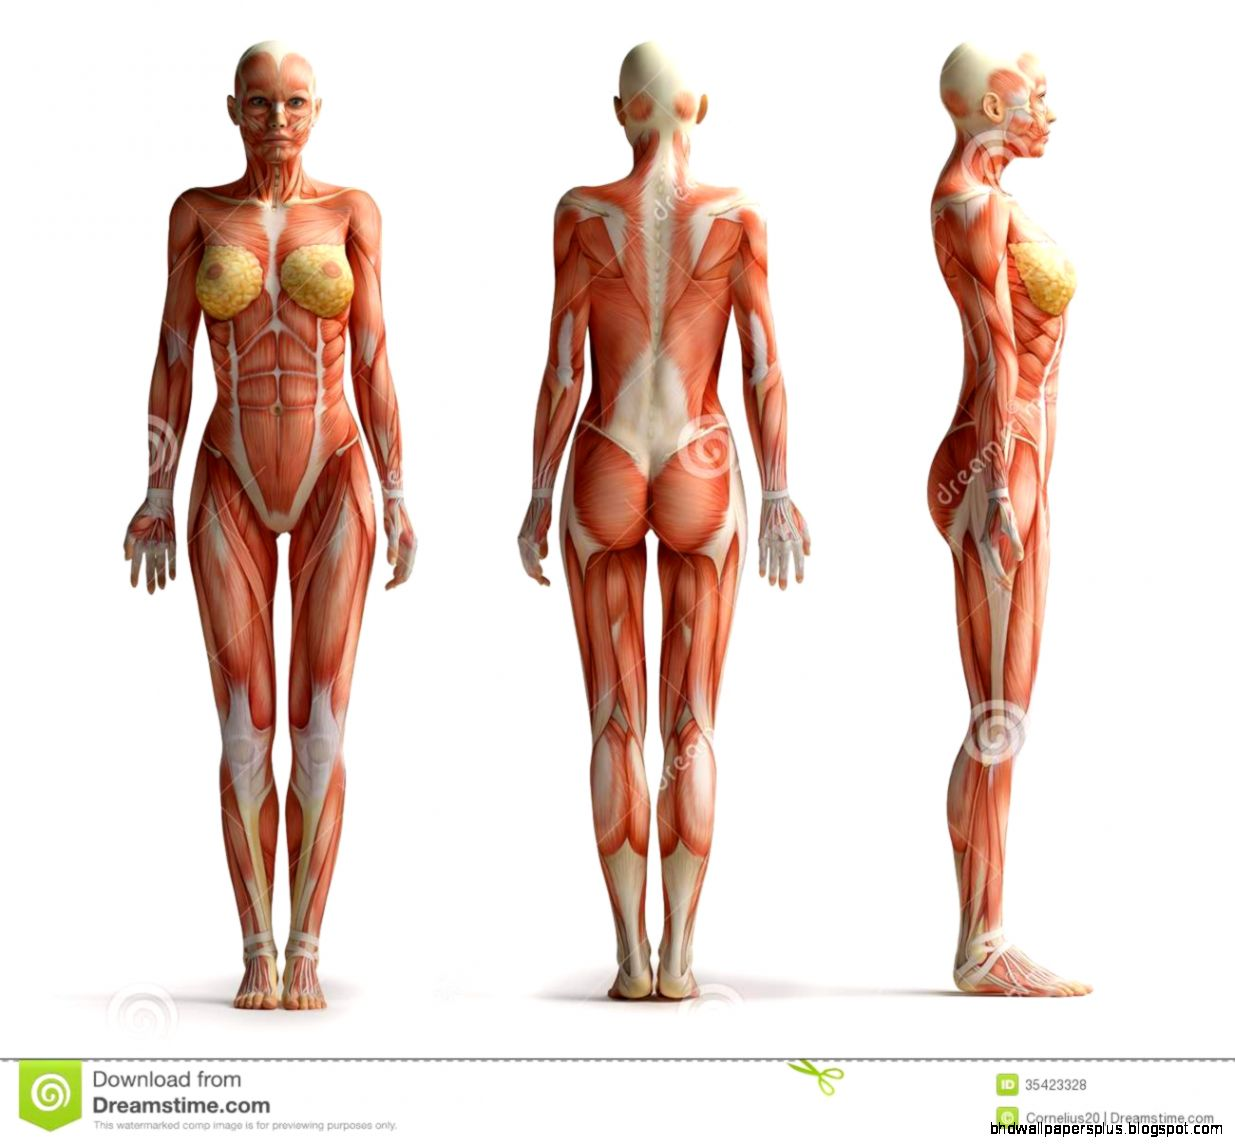 Woman Anatomy | HD Wallpapers Plus